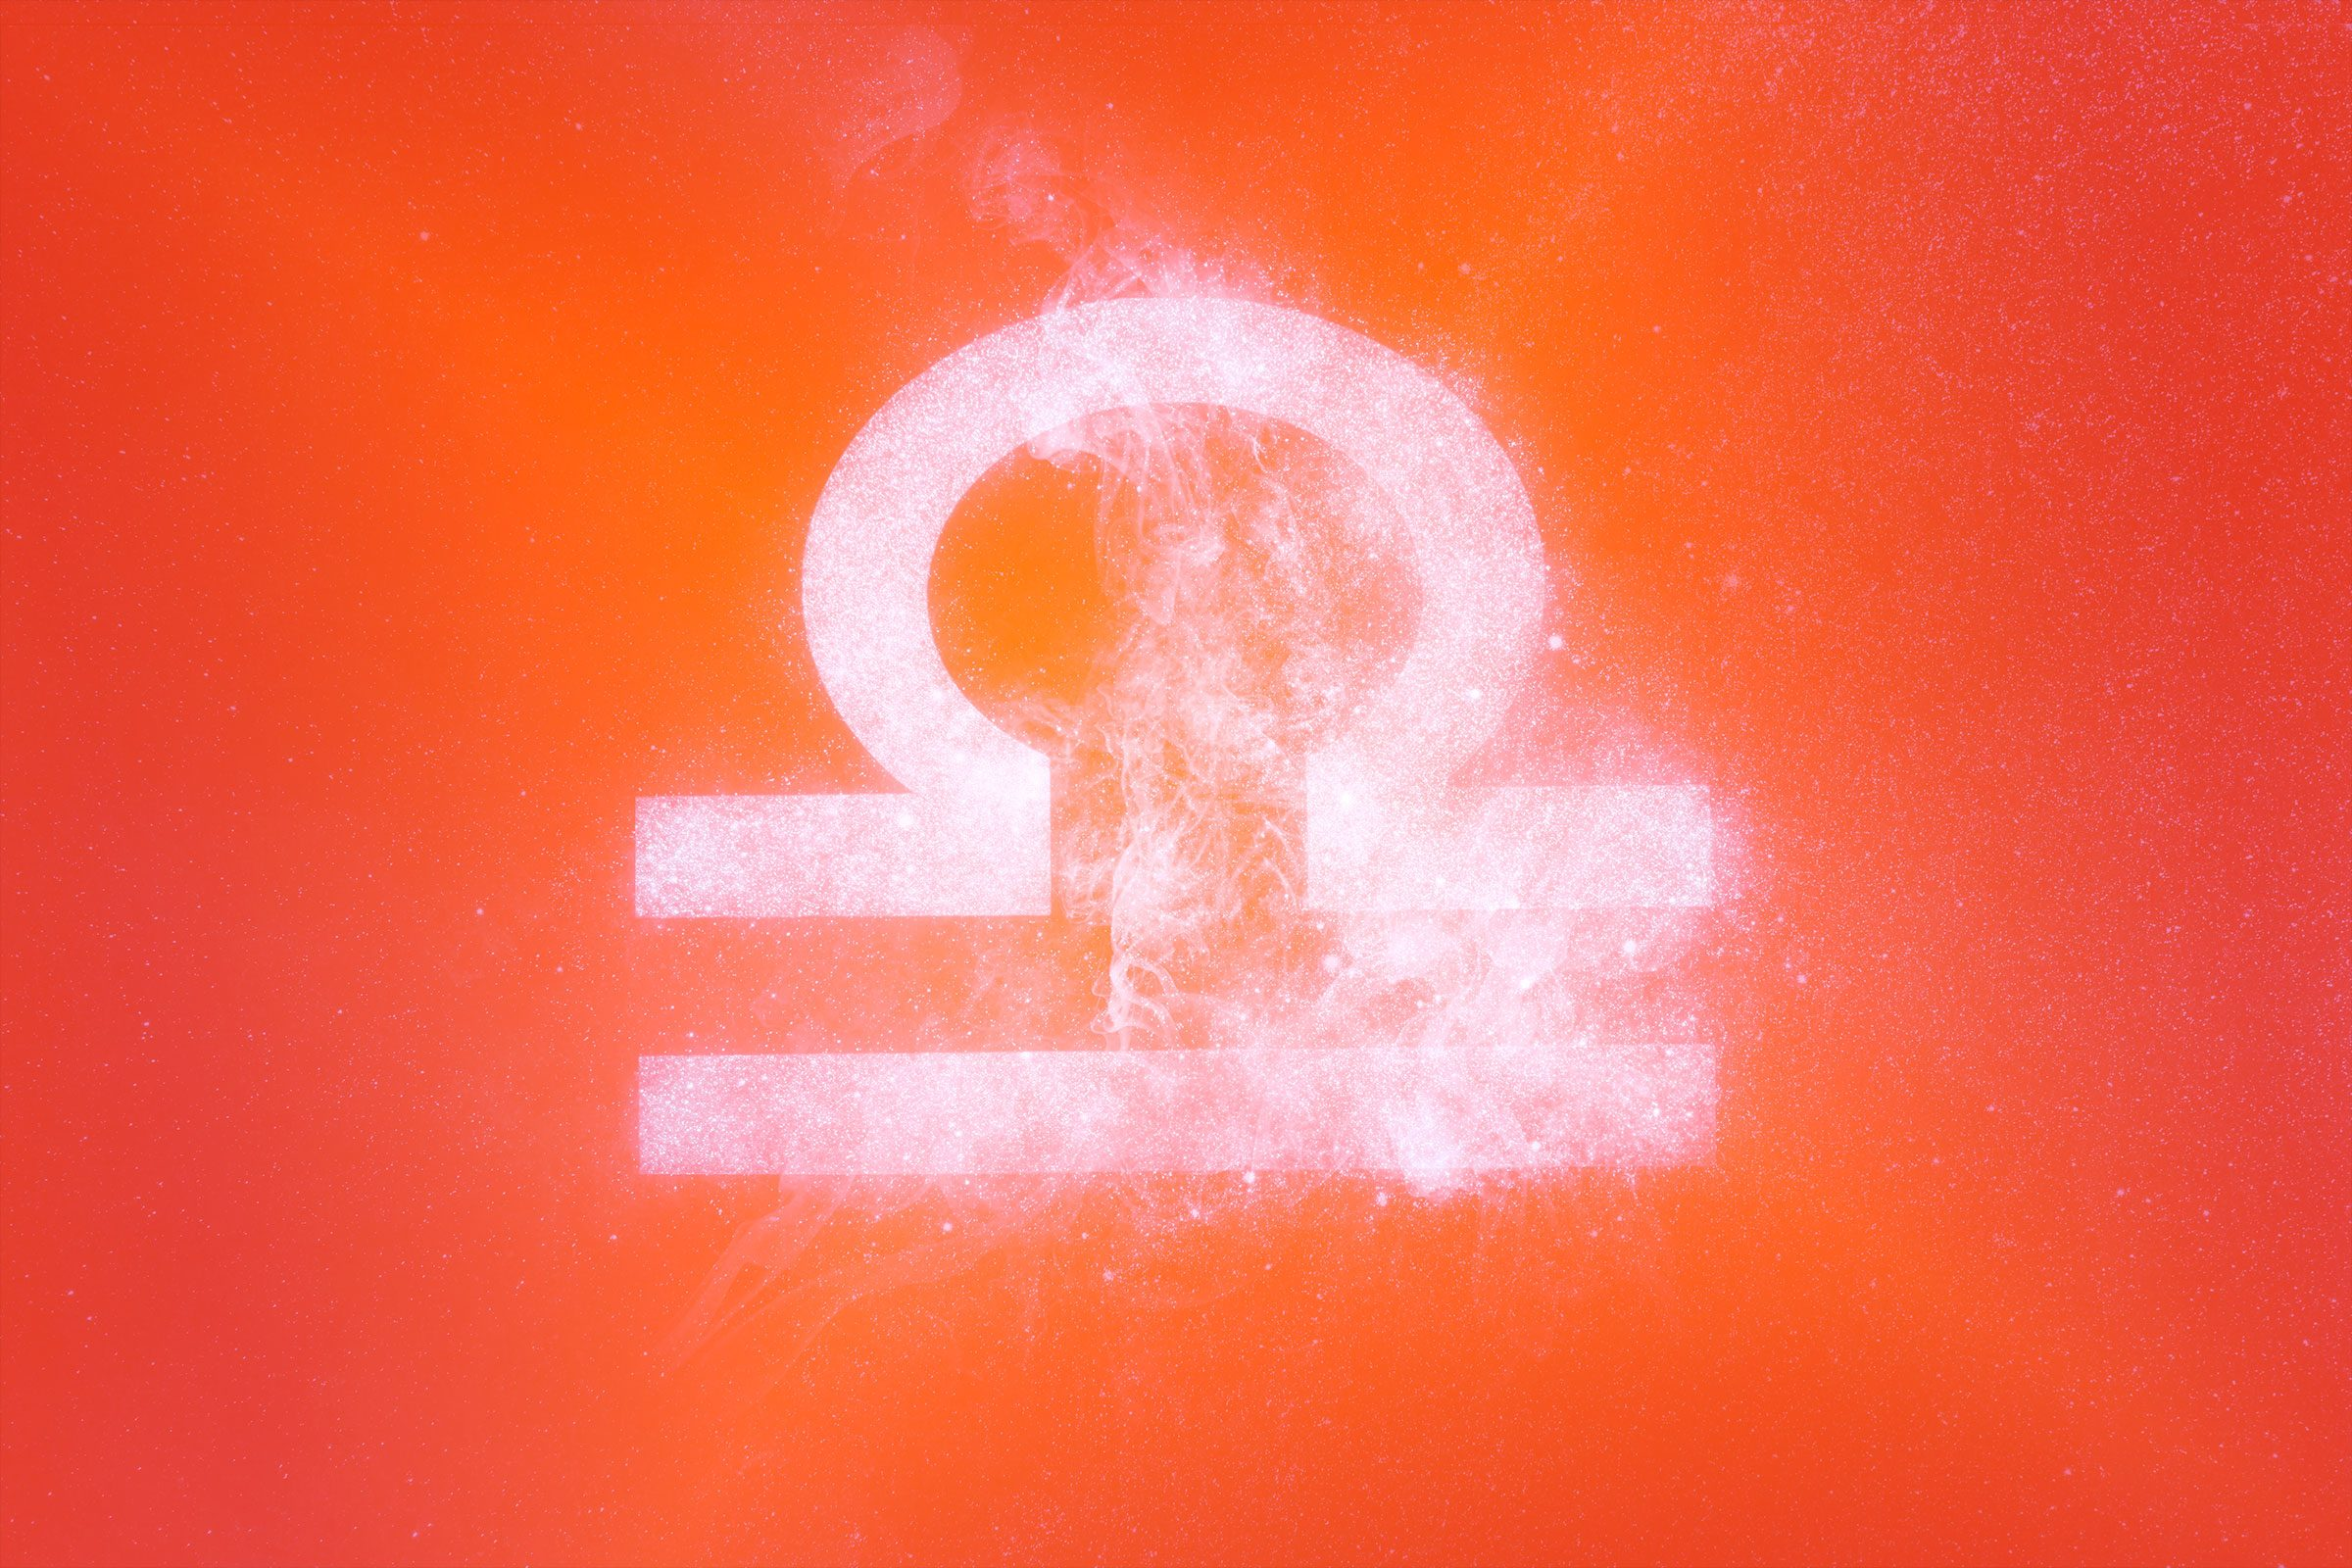 libra symbol with red-orange gradient overlay